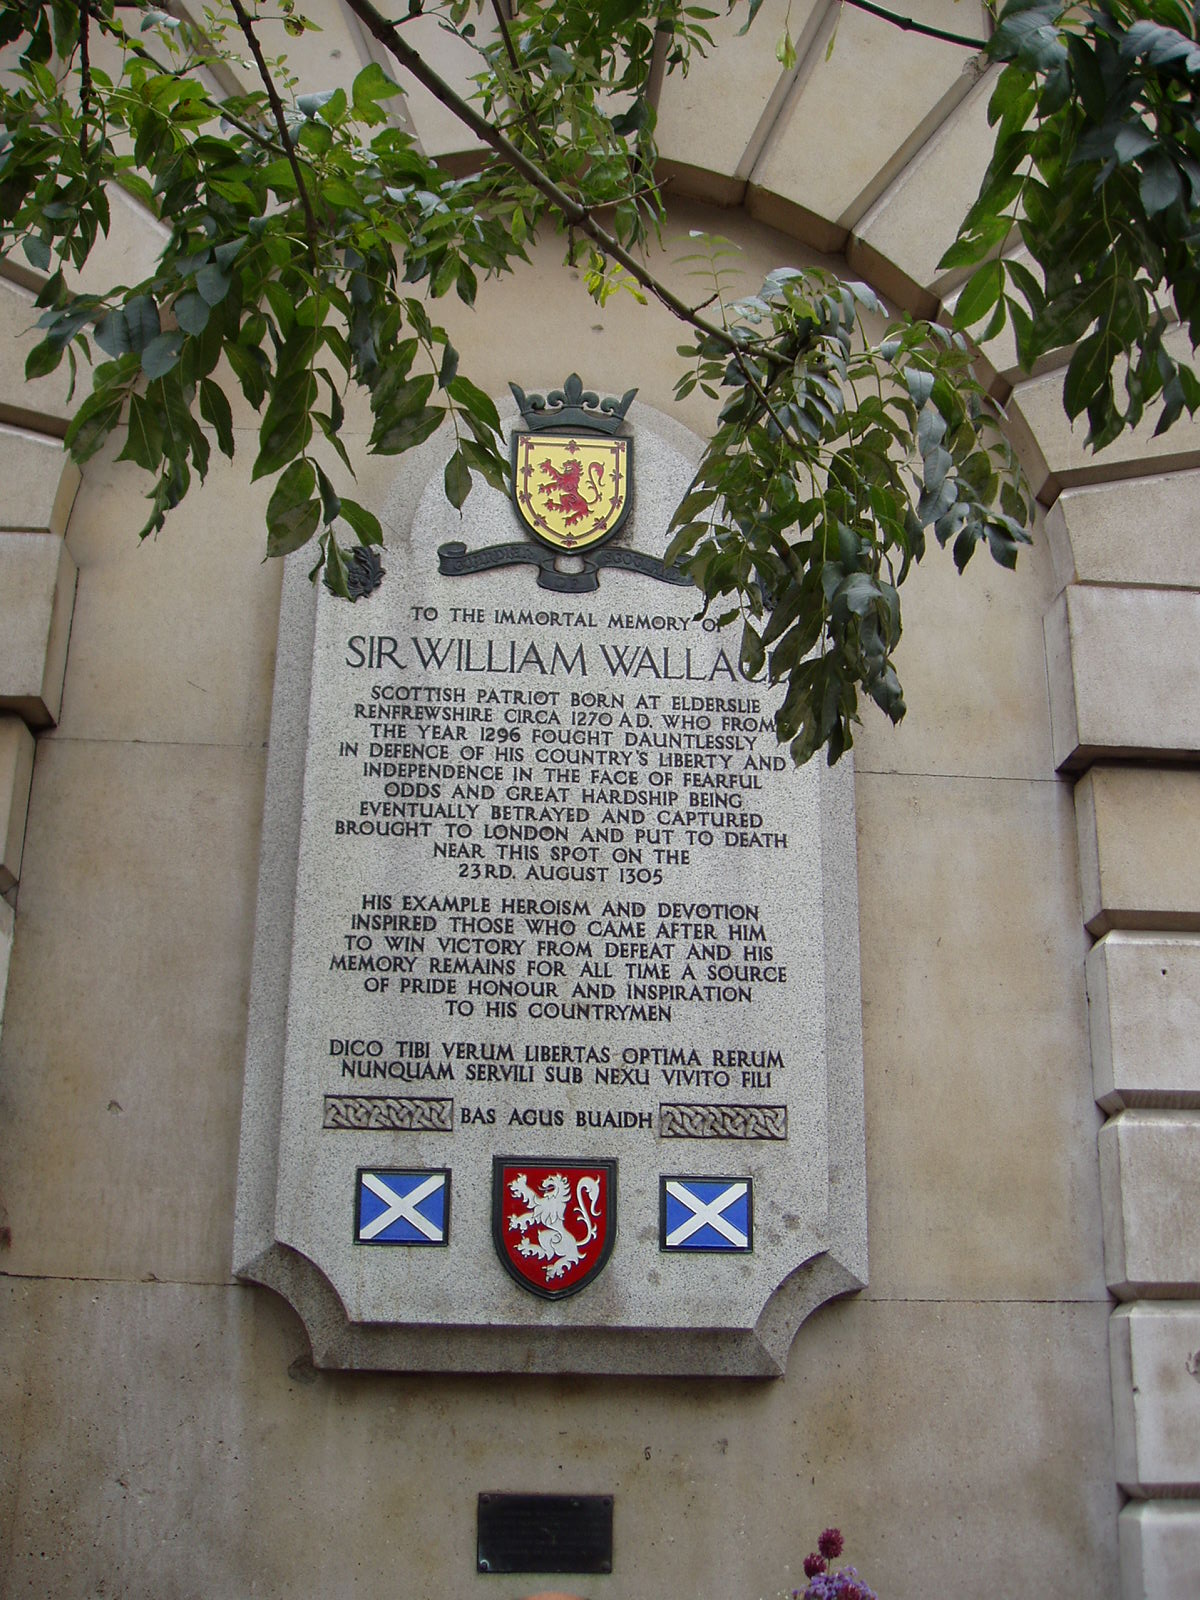 El lugar de la ejecución de William Wallace. La ejecución de William Wallace